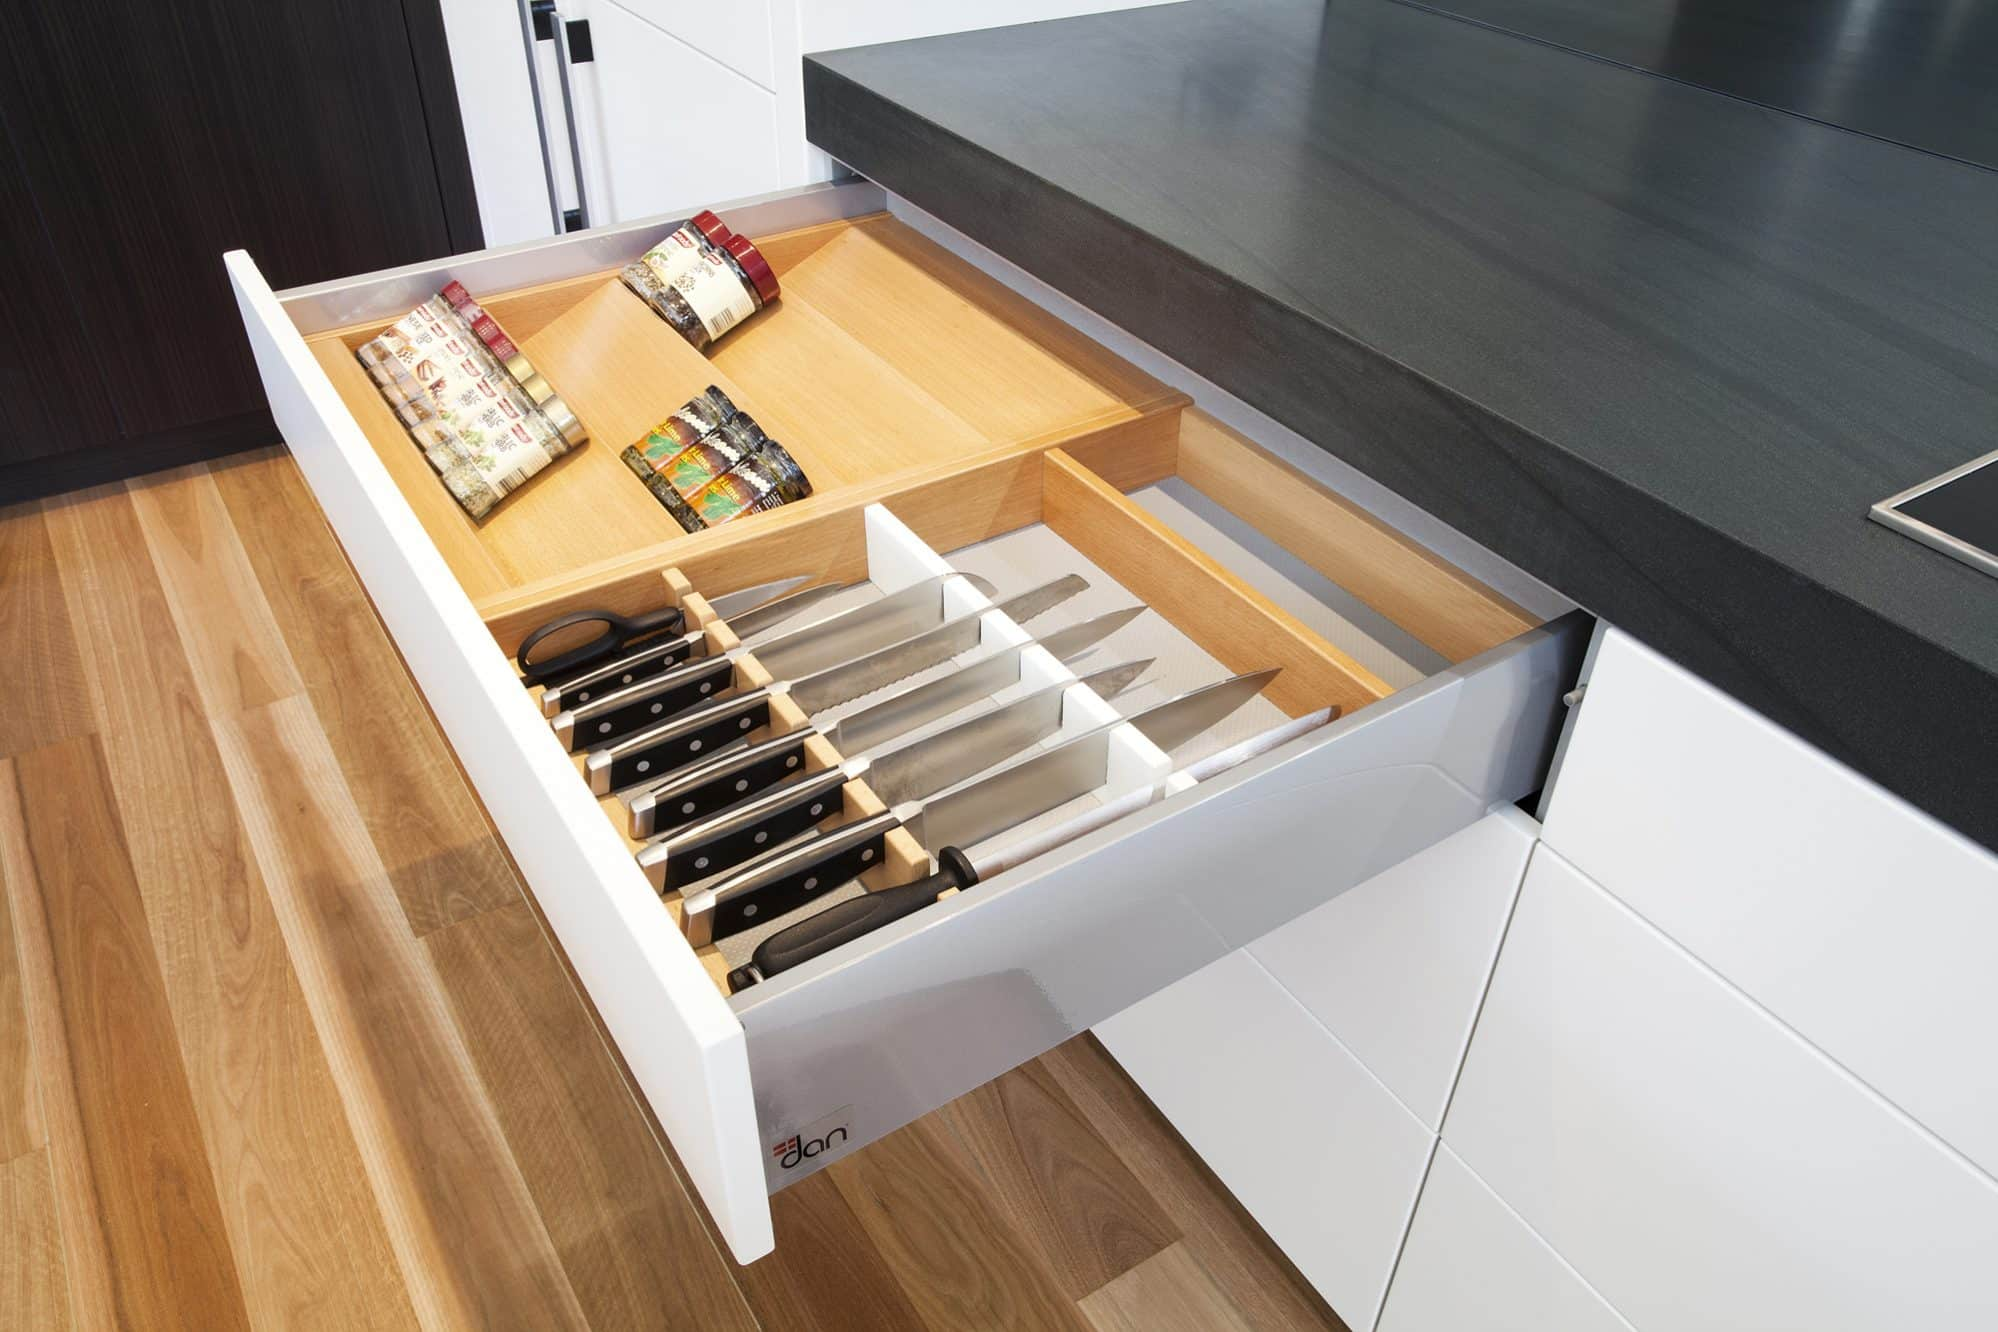 Custom timber knife drawer with spice rack